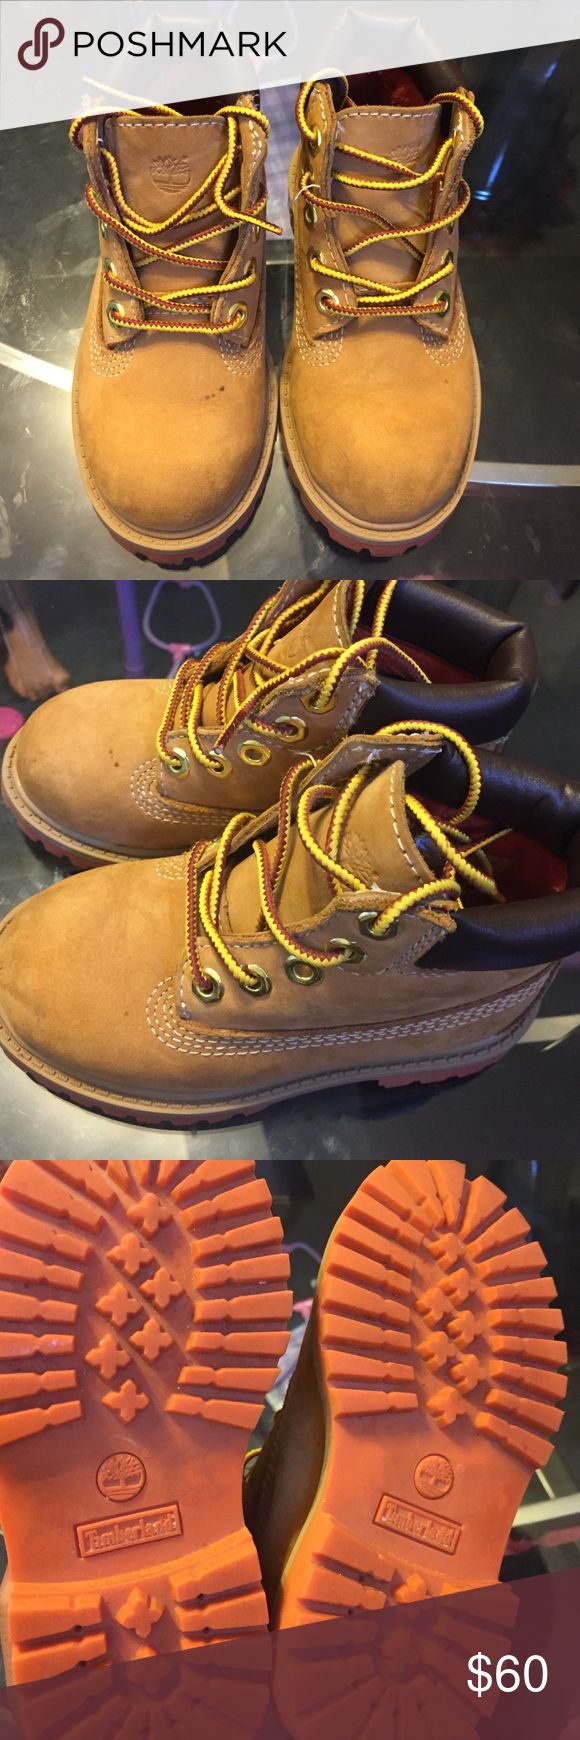 Timberland for toddlers Size 8 timberland for girls are boys 100% authentic worn a twice looks brand new Timberland Shoes Boots